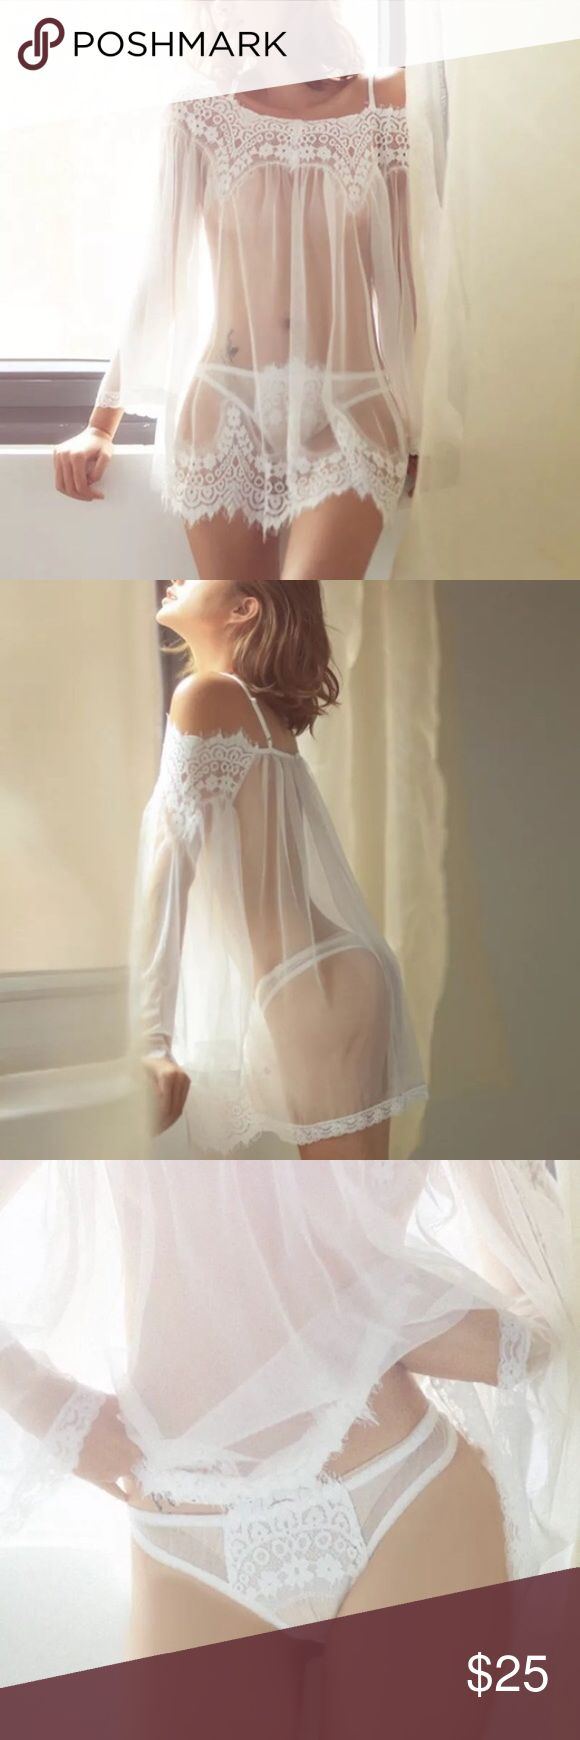 Gorgeous Nightwear Beautiful and attractive New fresh to your couple's life, stimulative design for you two  100% Brand New and High Quality  Color: White  Material: Lace   Size: S & M Intimates & Sleepwear